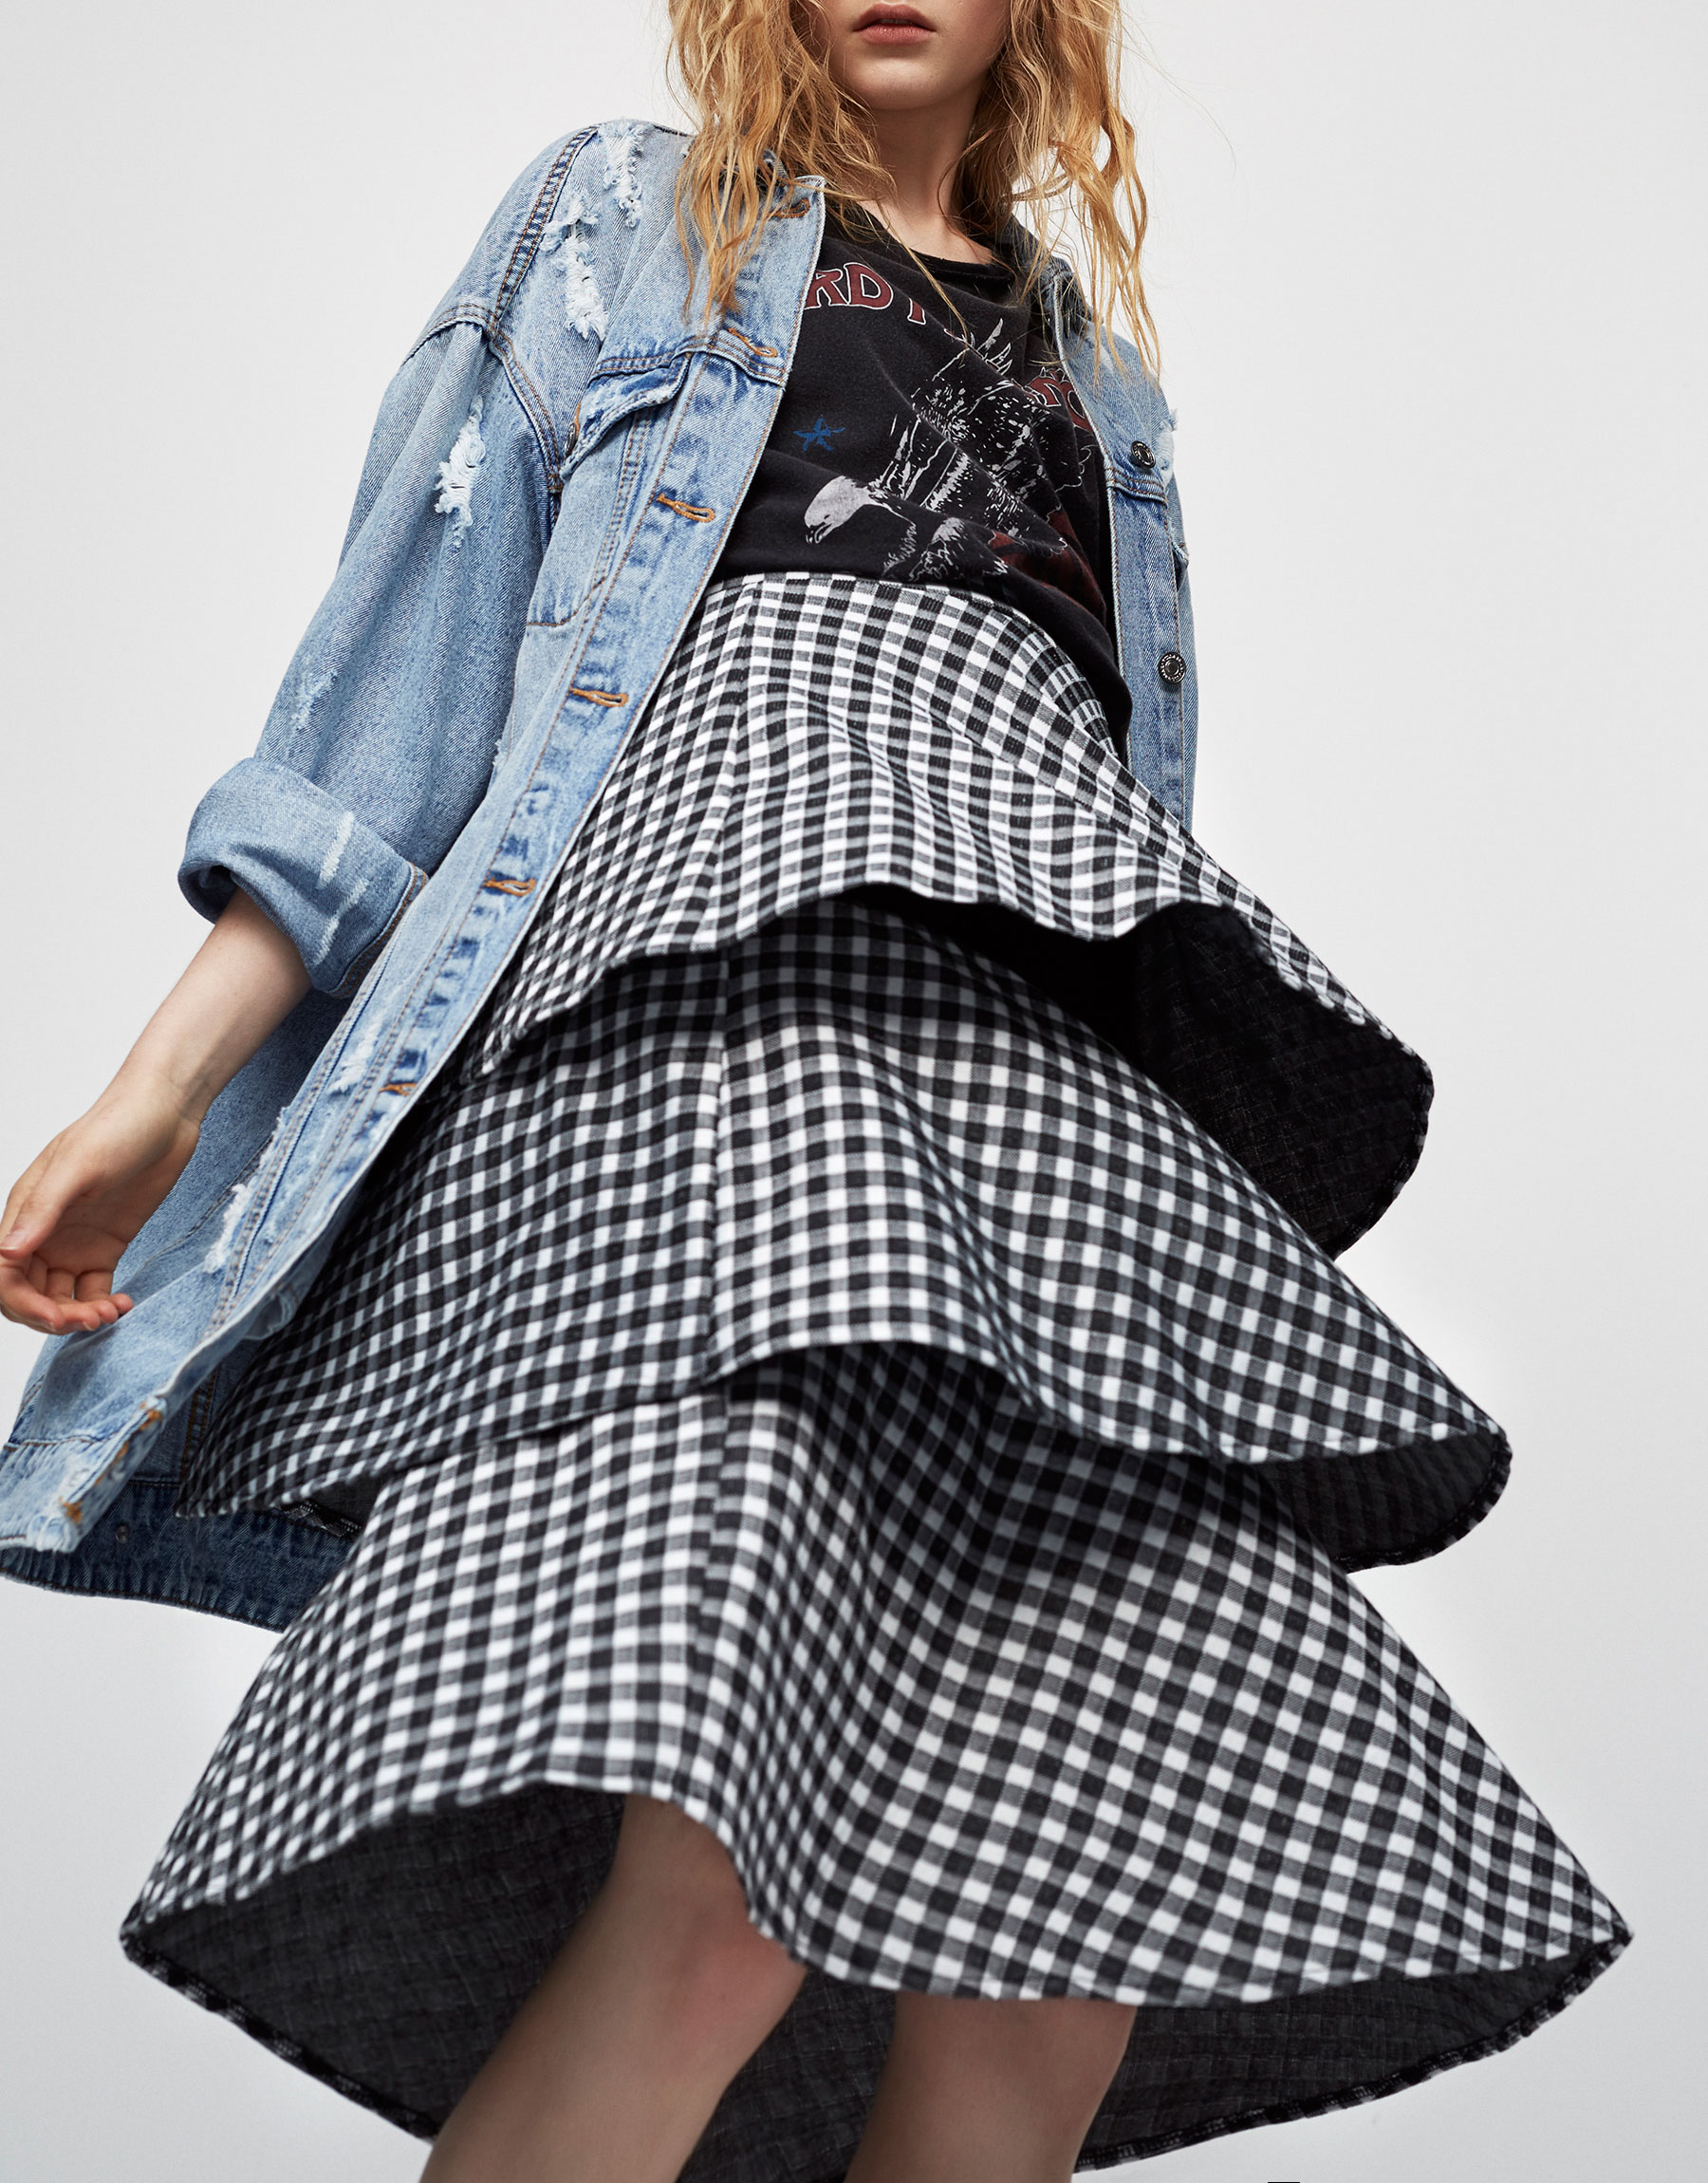 Gingham check skirt with frill